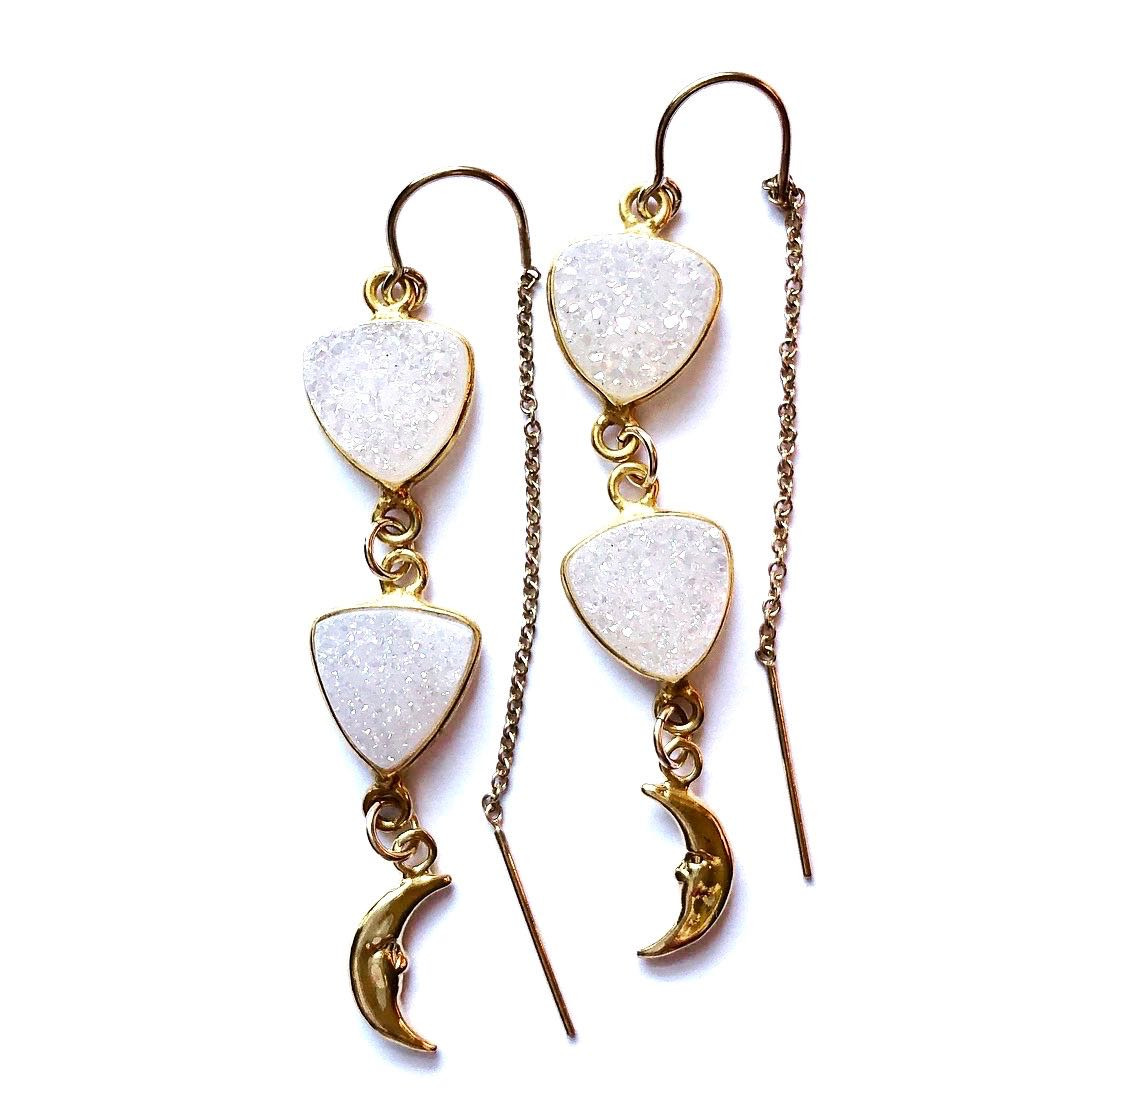 2Dy4: Druzy Crystal, Moons & Gold Filled Threader Earrings